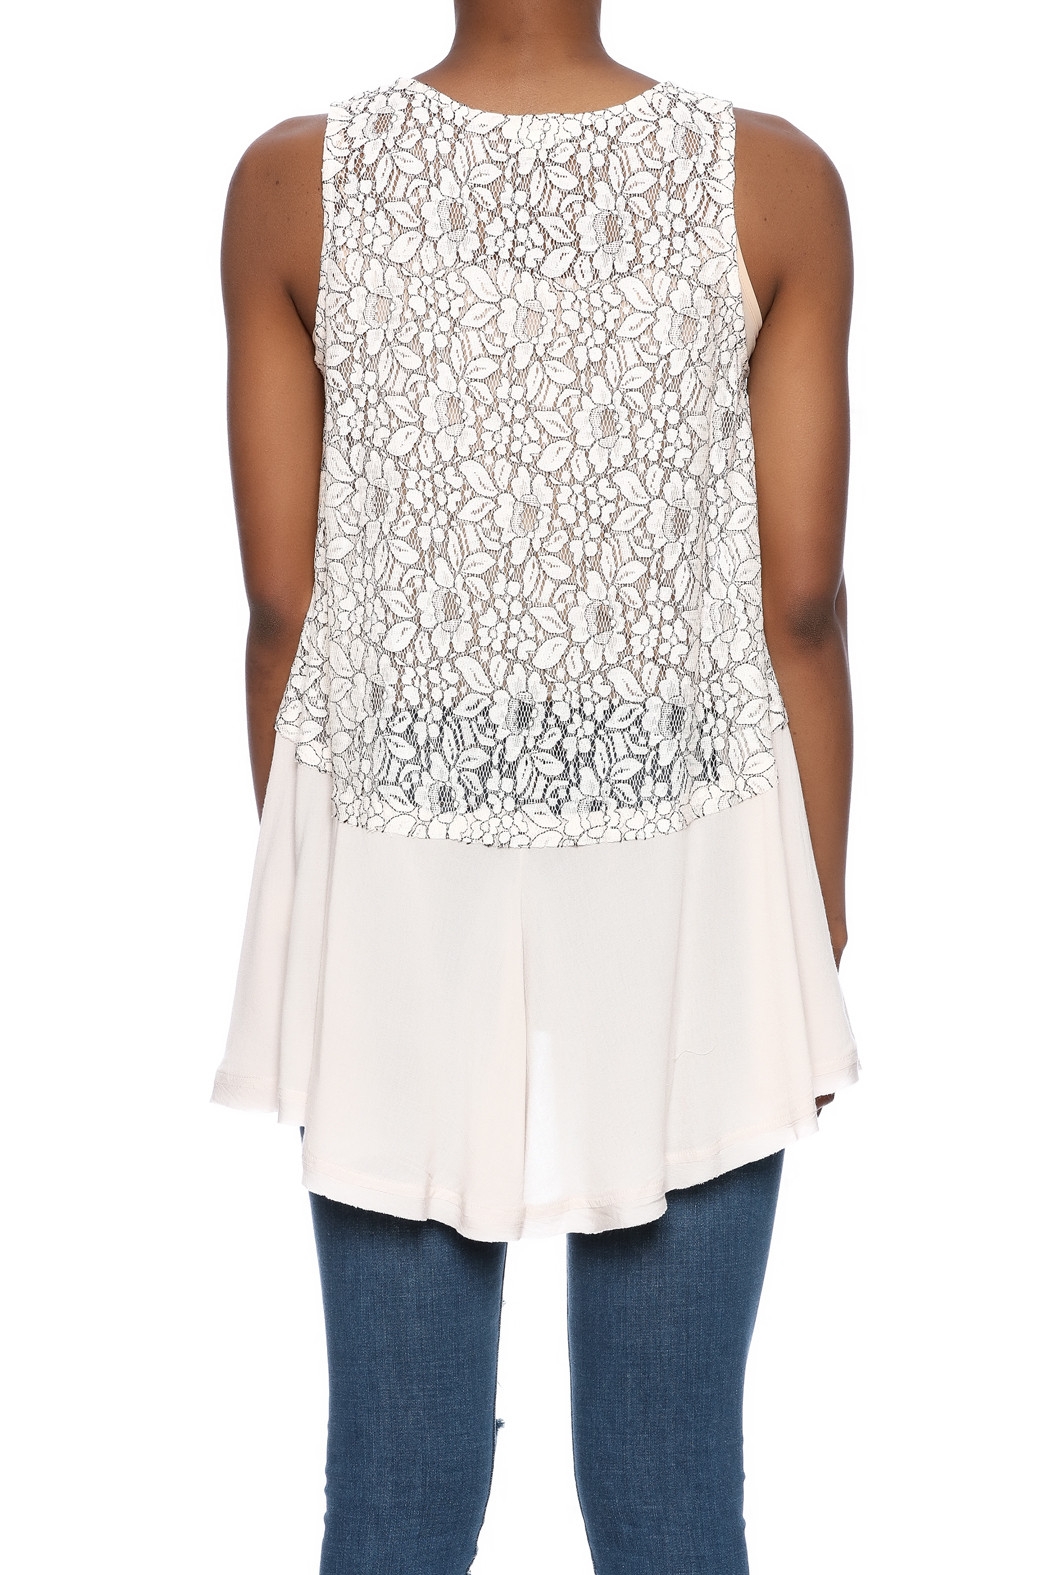 Mystree Crochet Lace Tank from Indiana by Posh Vincennes